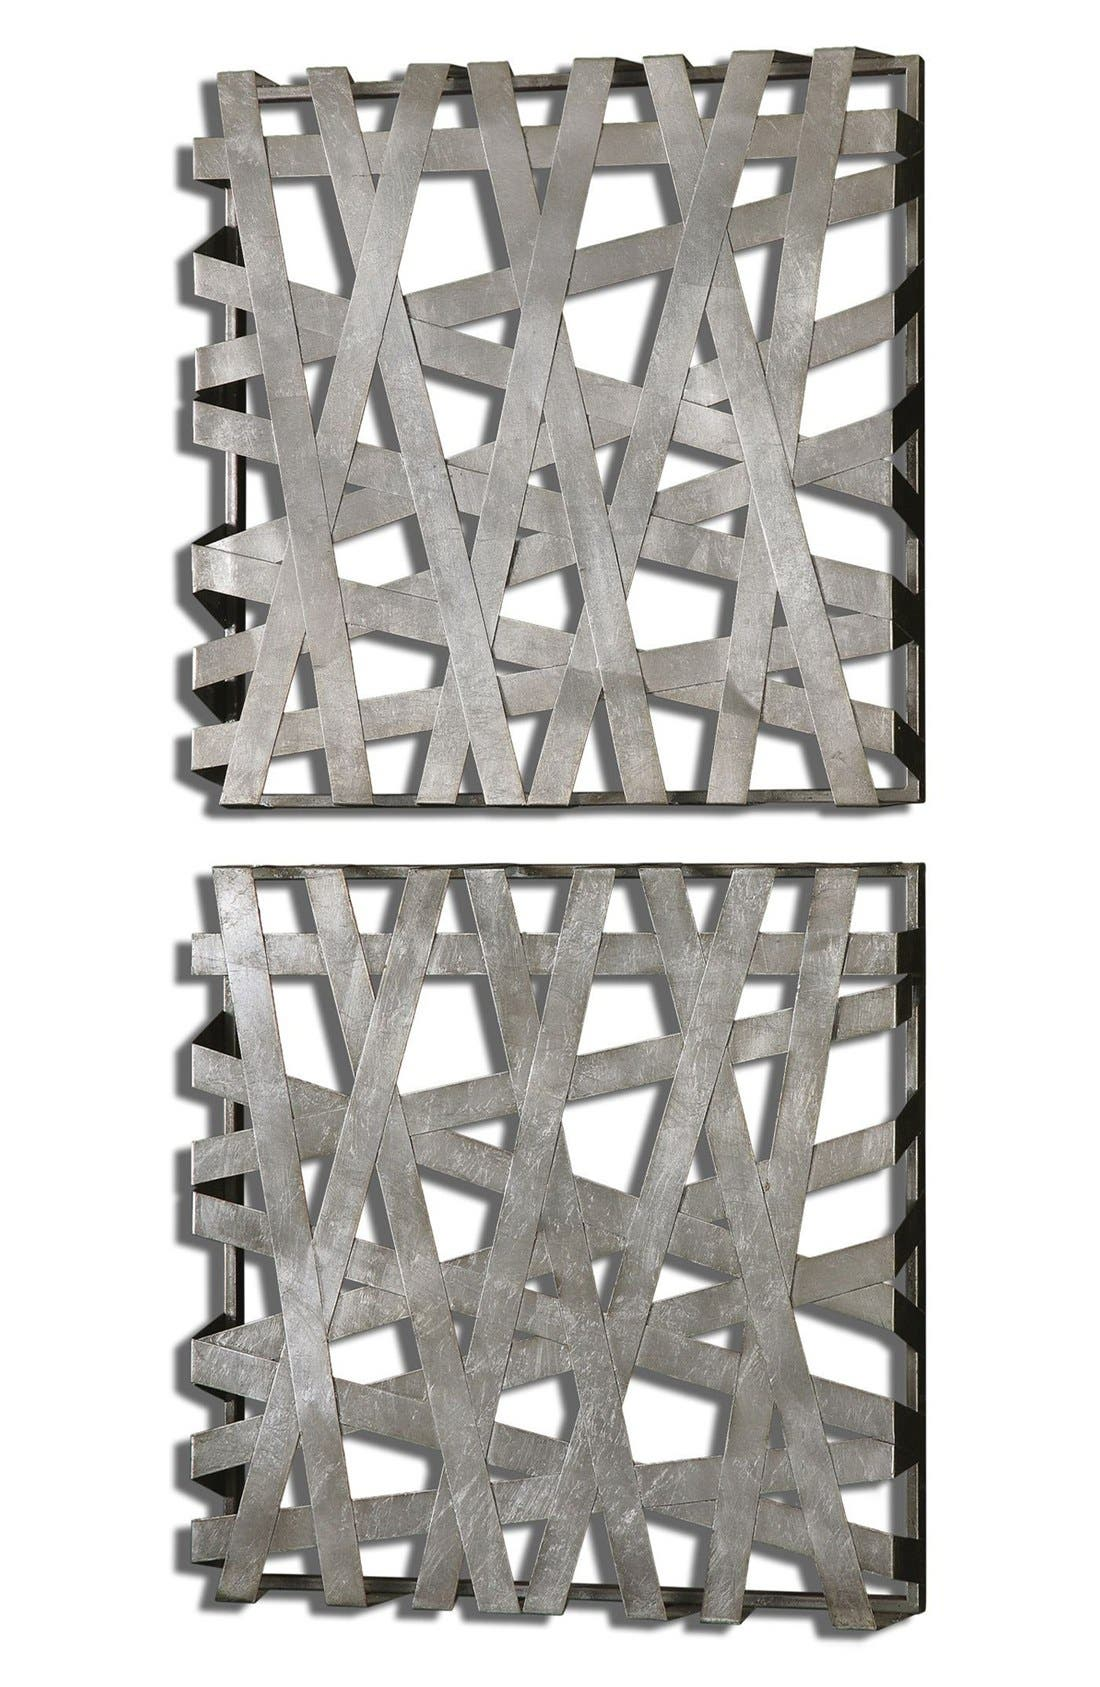 Alternate Image 1 Selected - Uttermost 'Alita Squares' Wall Art